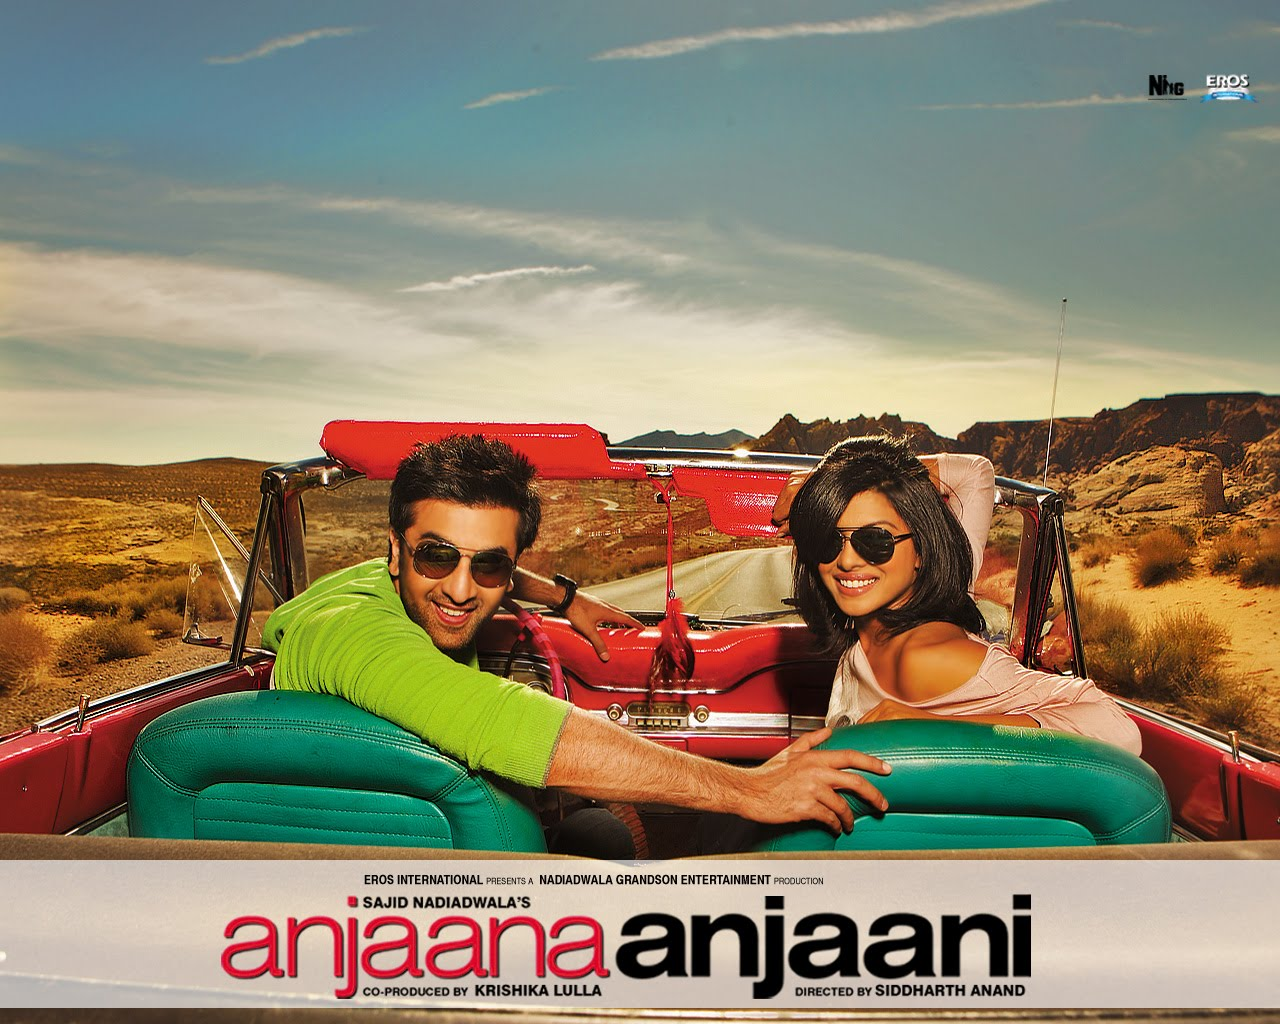 Anjaana anjaani hindi film songs free download ▷ ▷ powermall.